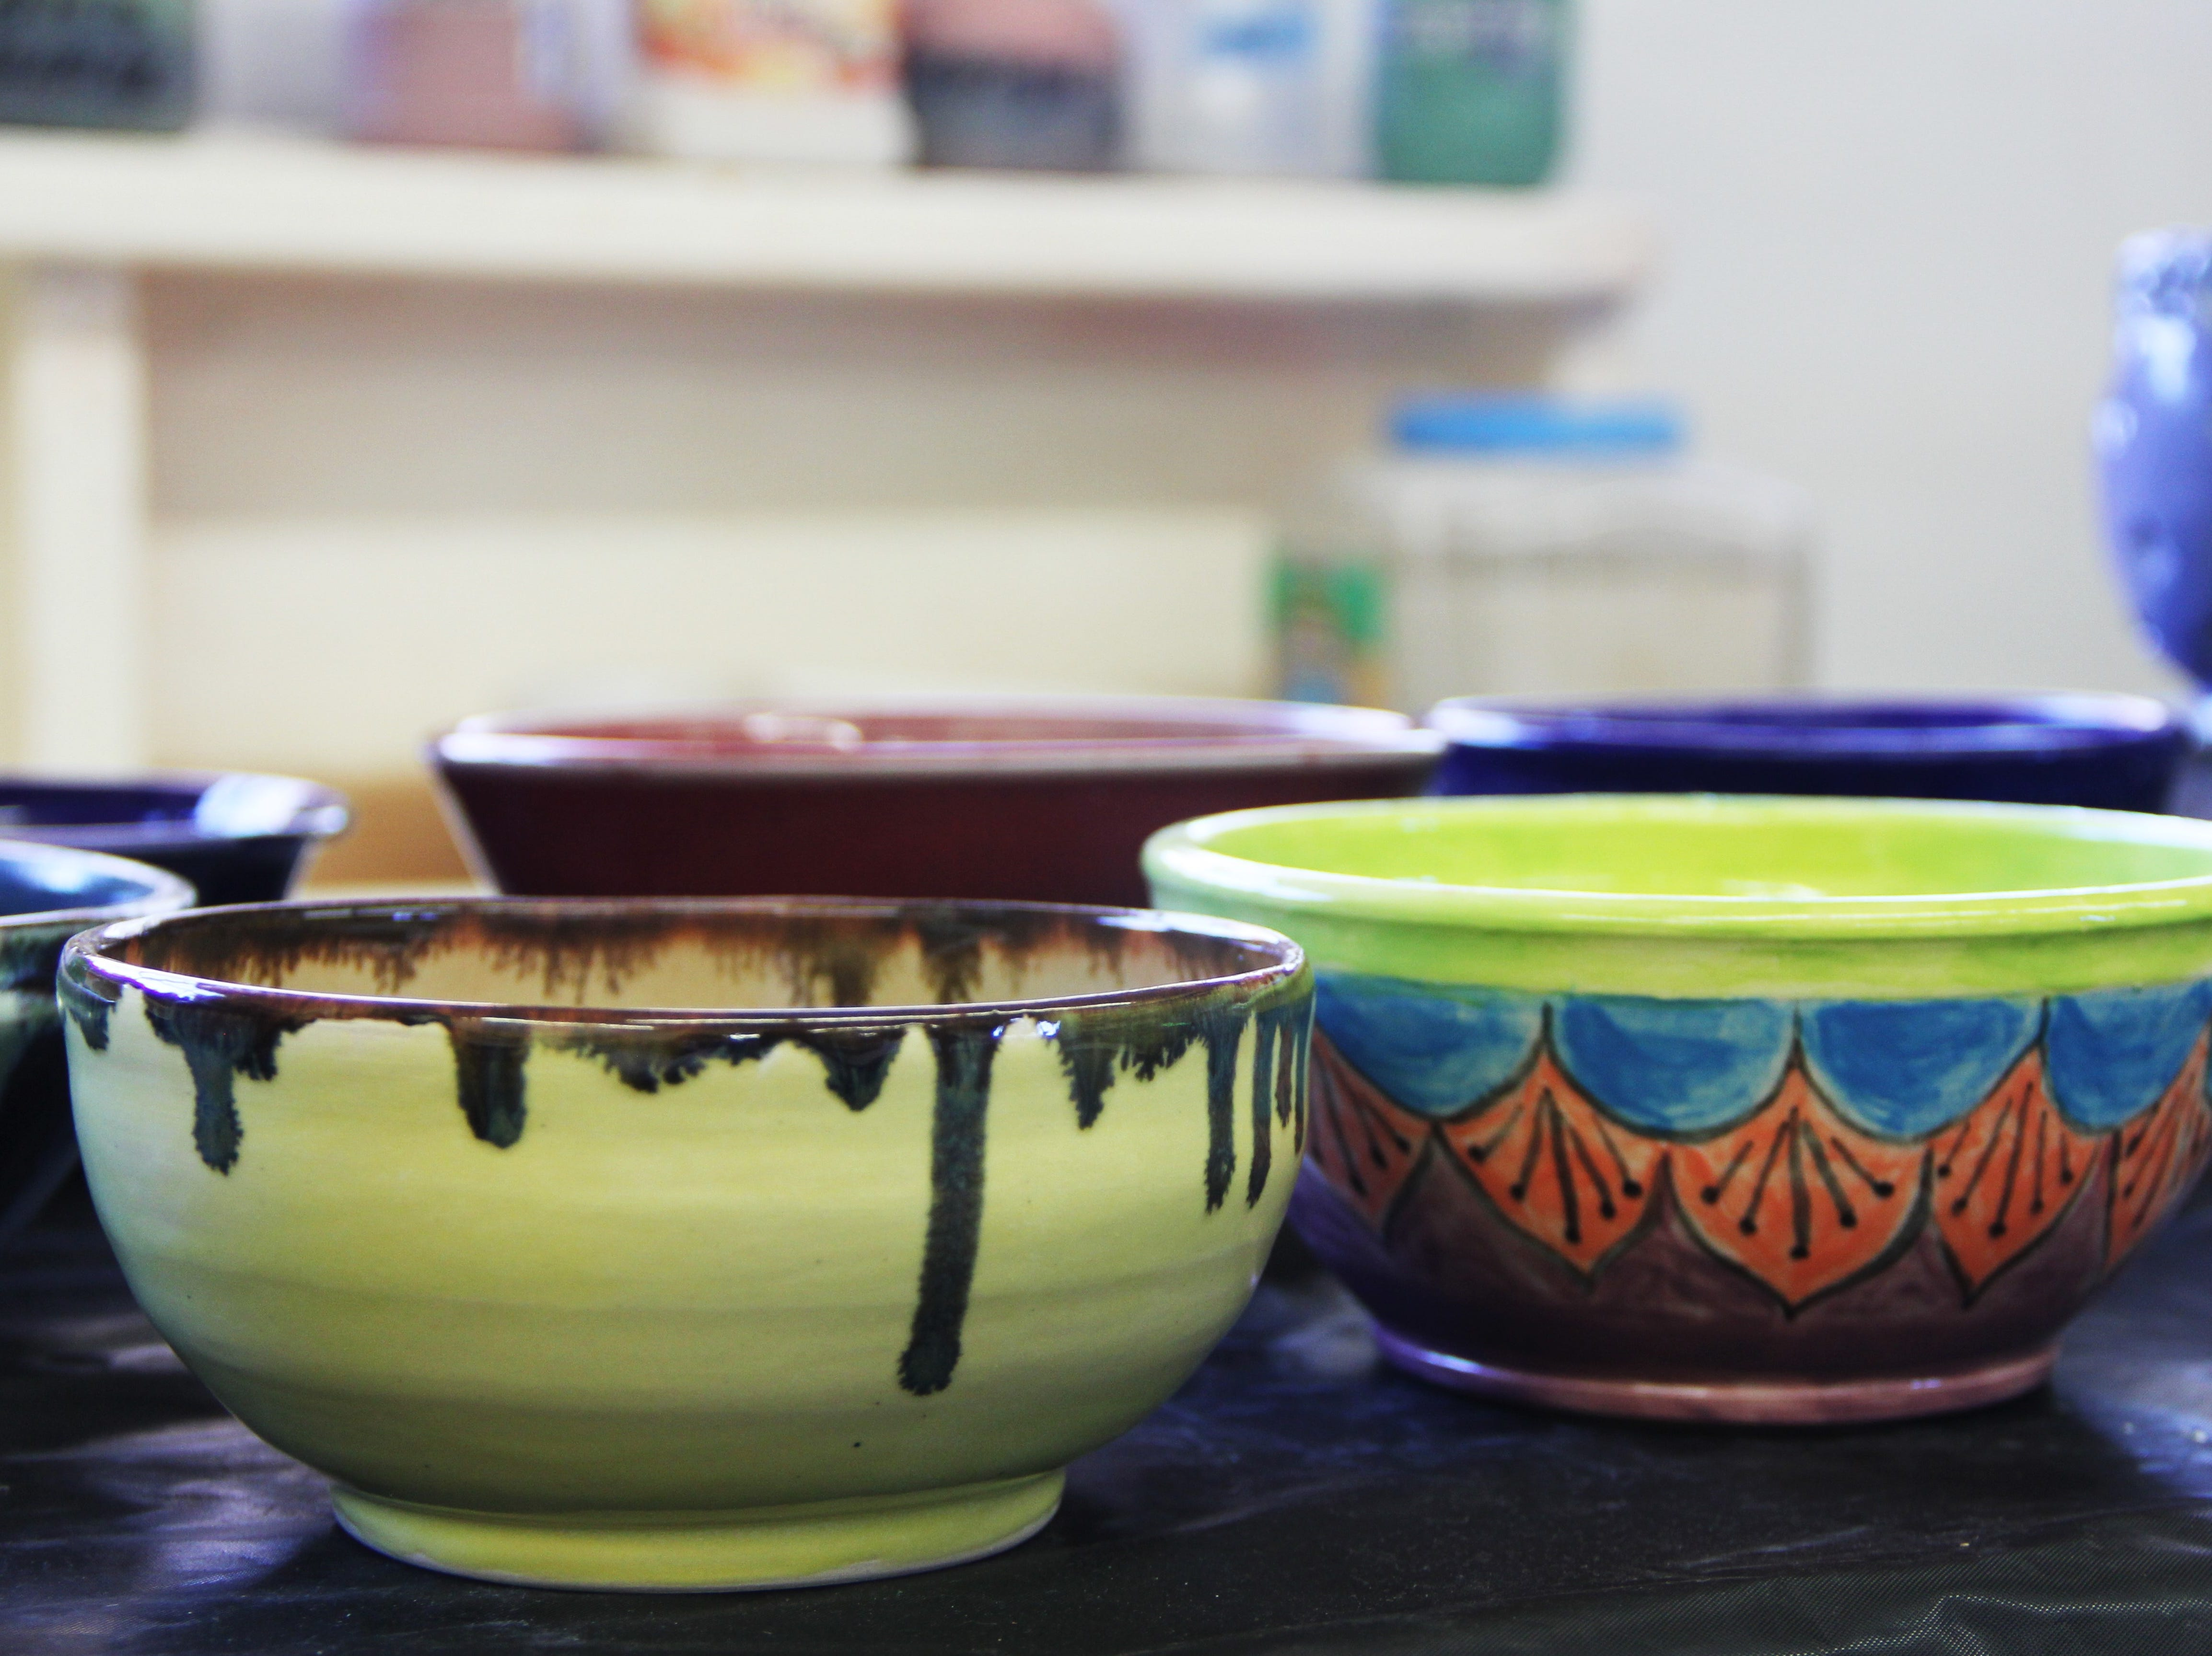 Handmade bowls at the Willamette Art Center's Empty Bowls fundraiser on Saturday, Nov. 17. Each year, they aim to raise $20,000 for the Marion-Polk Food Share.